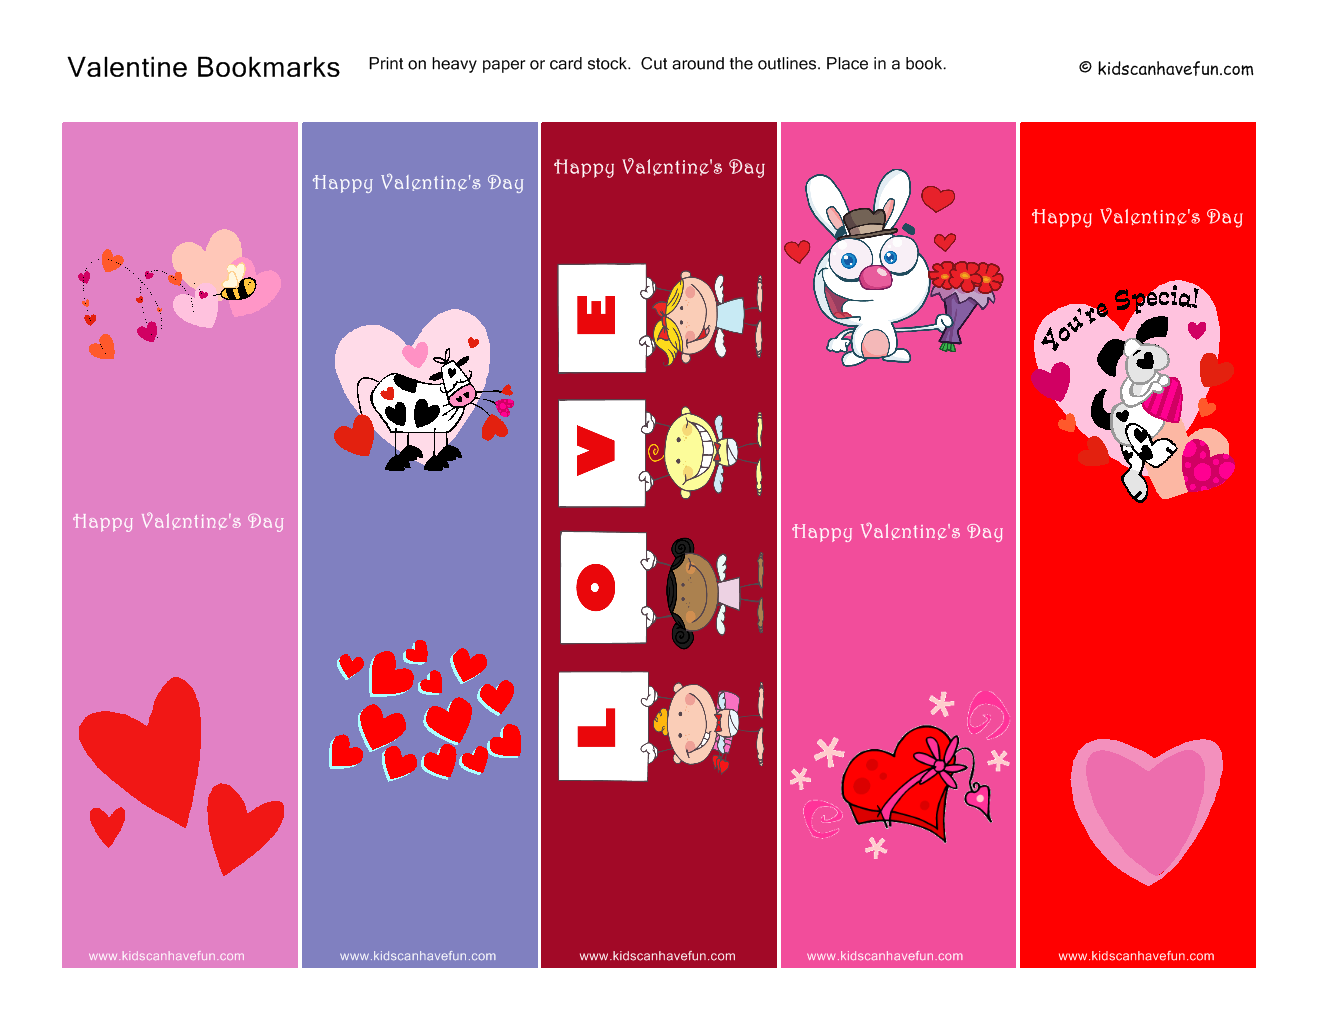 7 Images of Valentine's Day Printable Bookmarks To Color